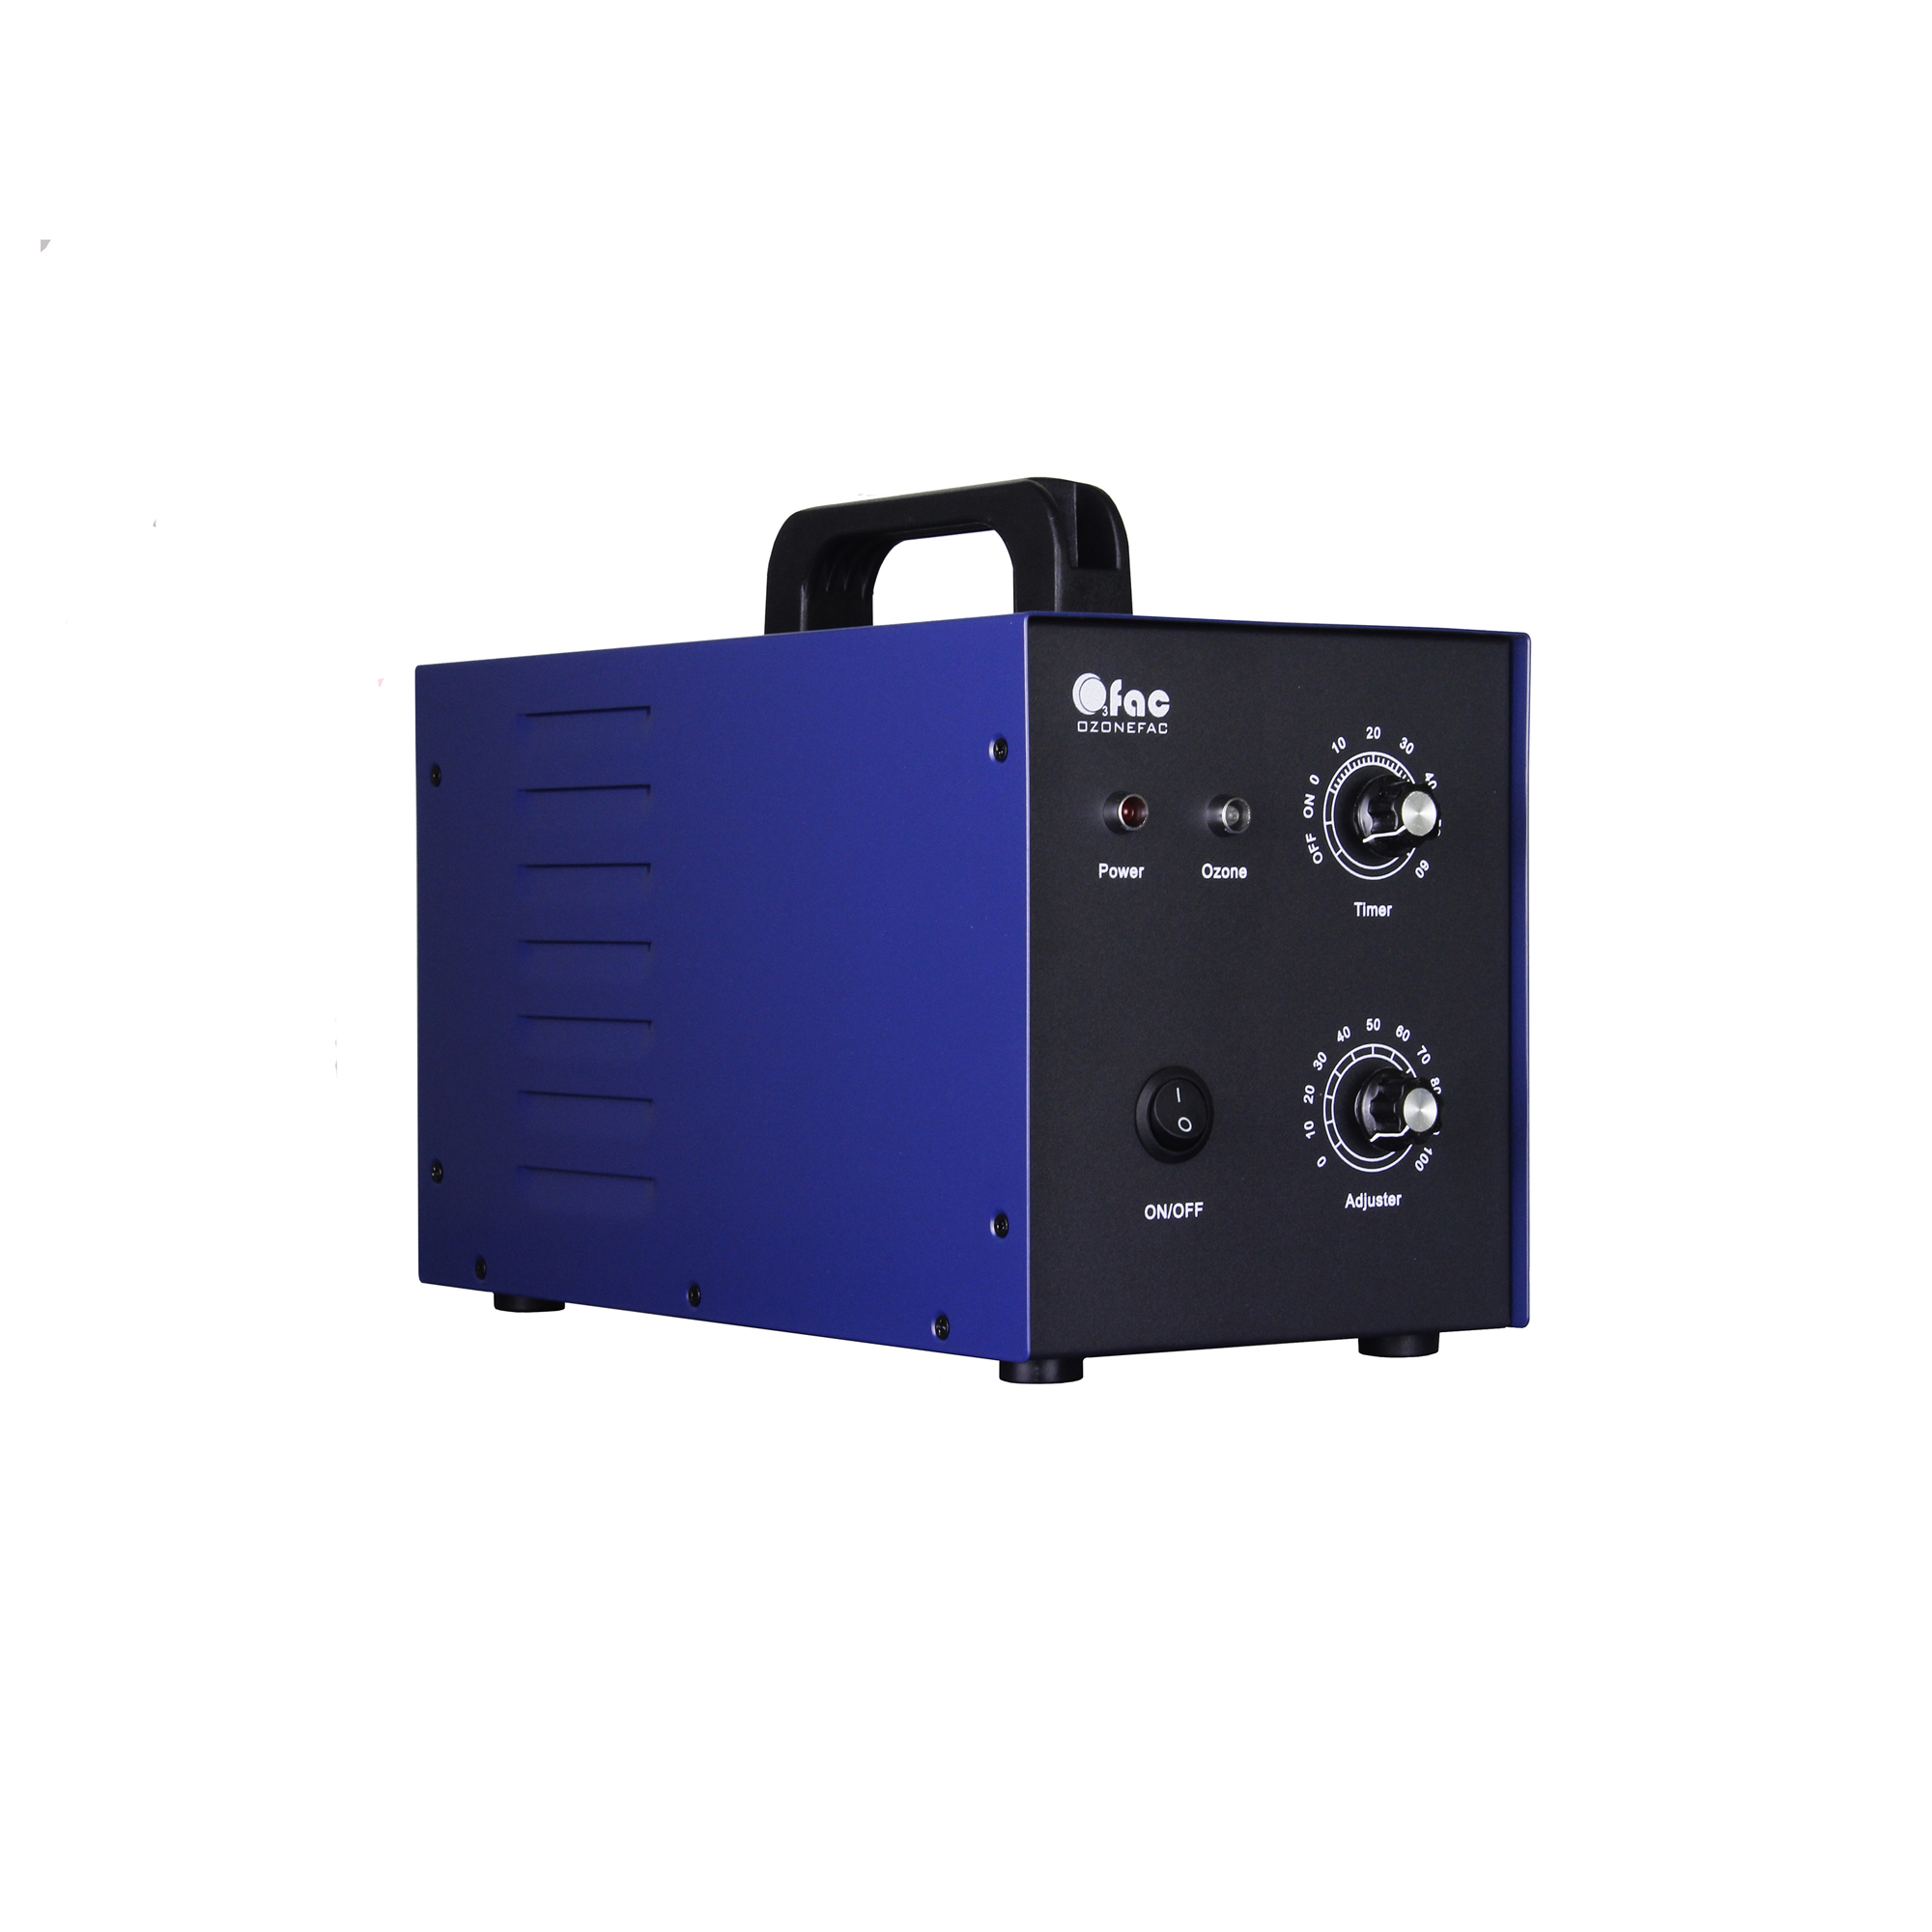 OZ-AN 1G Portable Ozonator